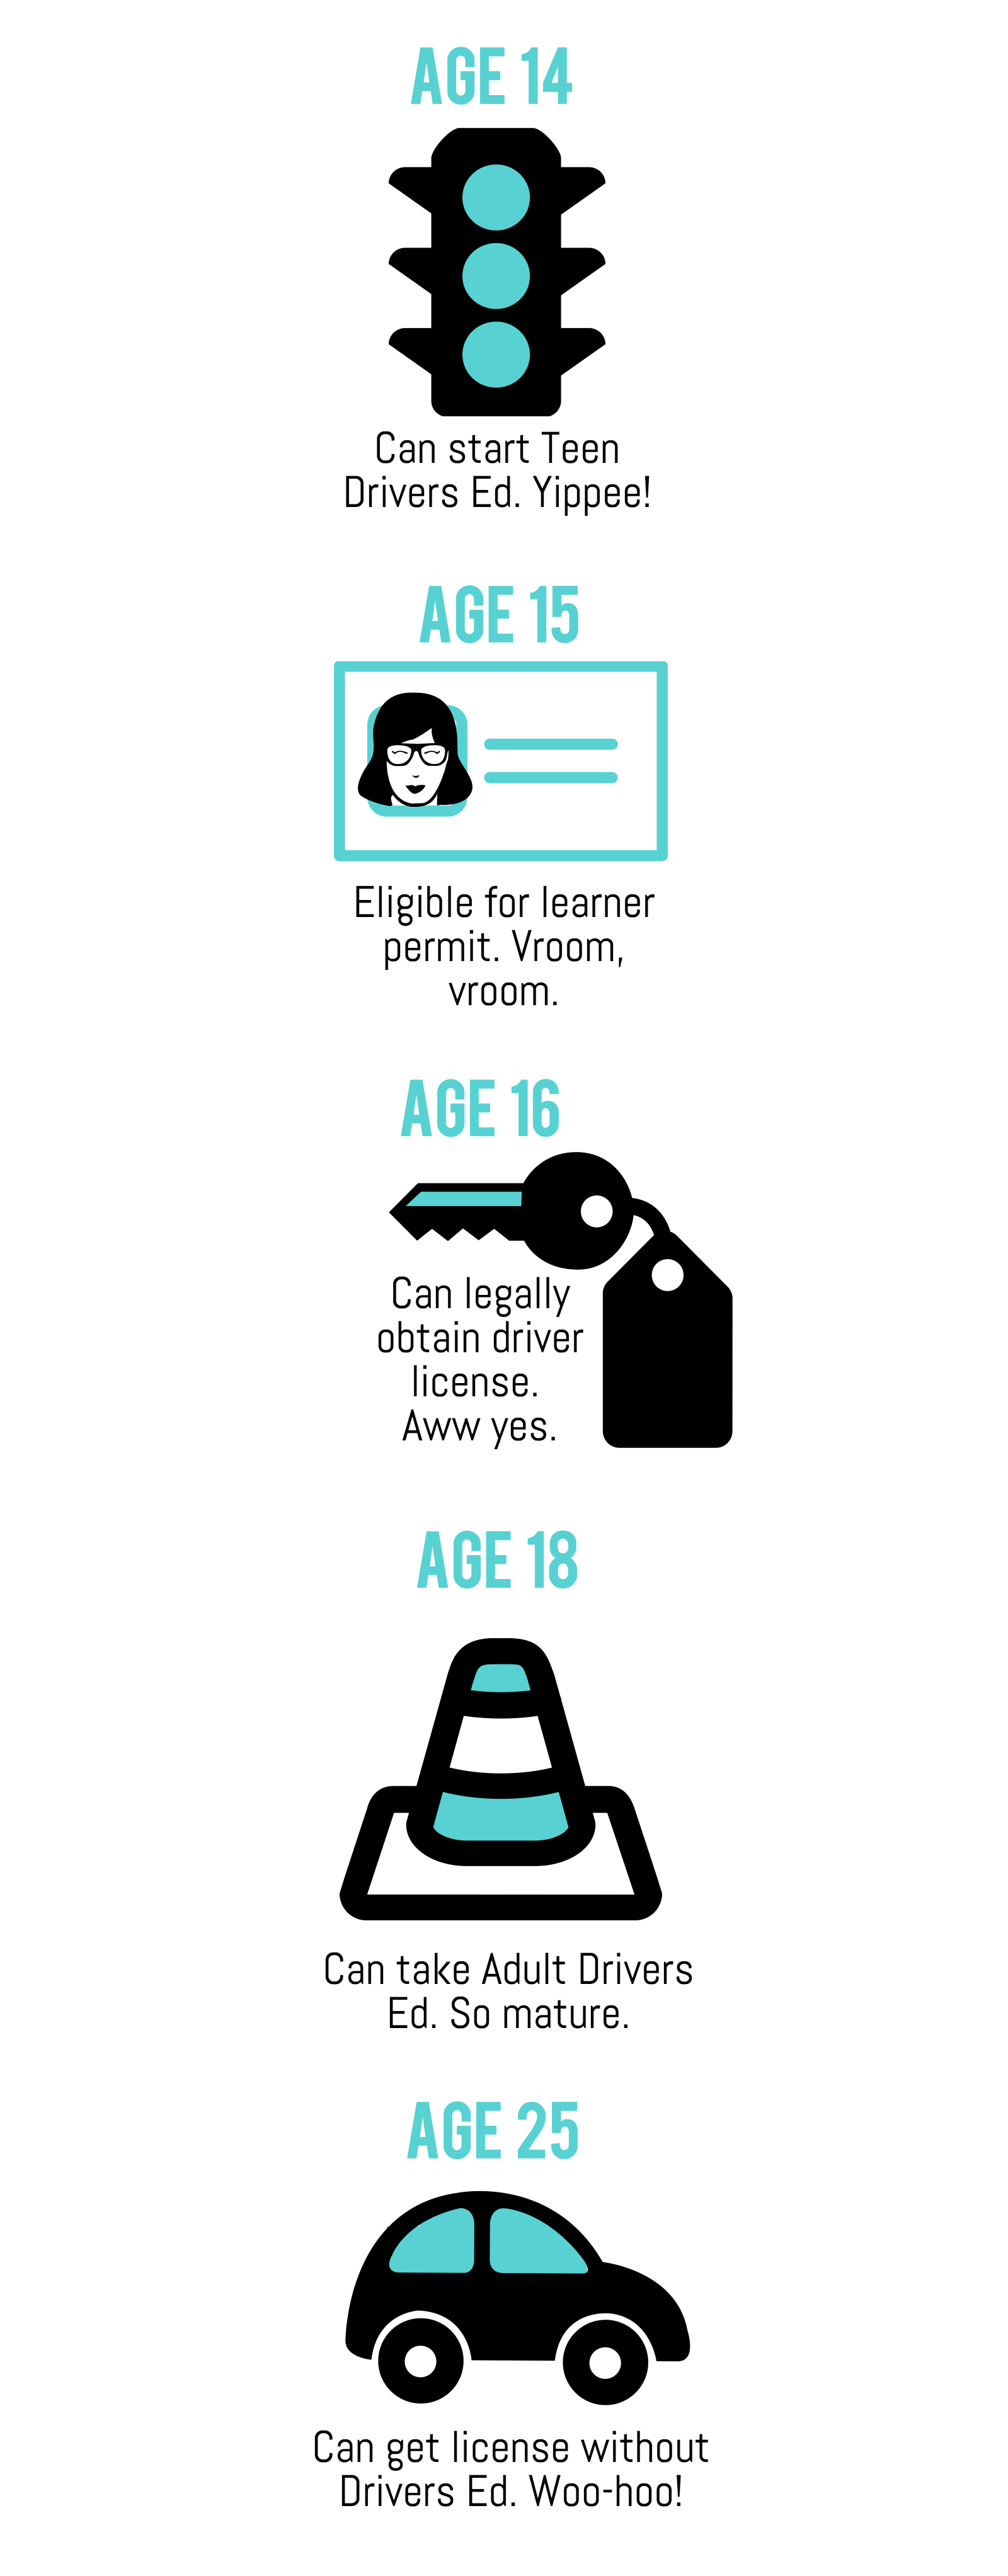 Texas laws dating age